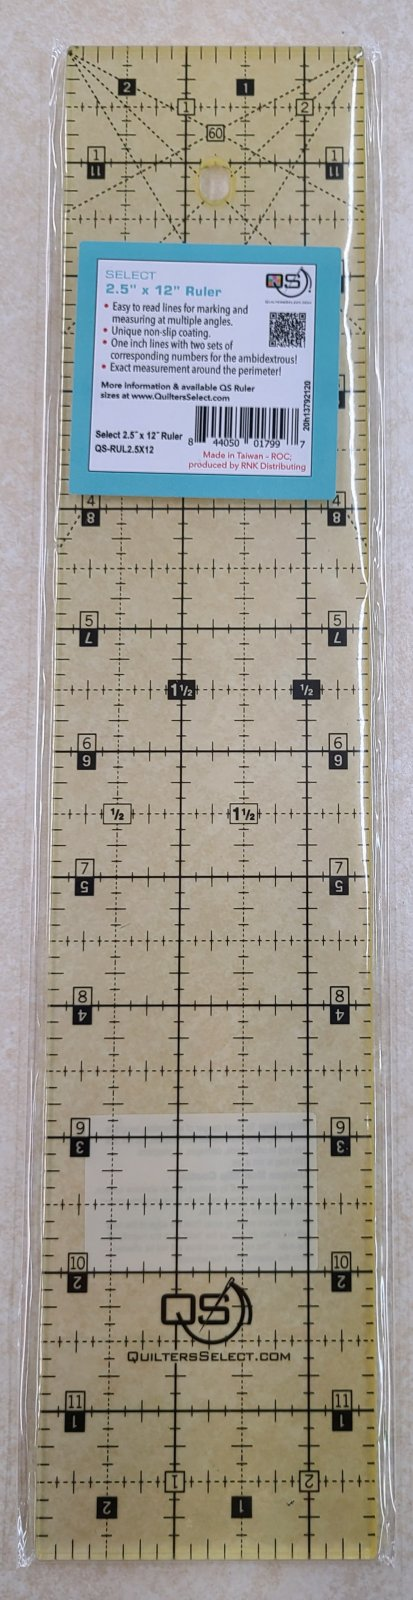 Quilters Select 2.5 x 12 Ruler